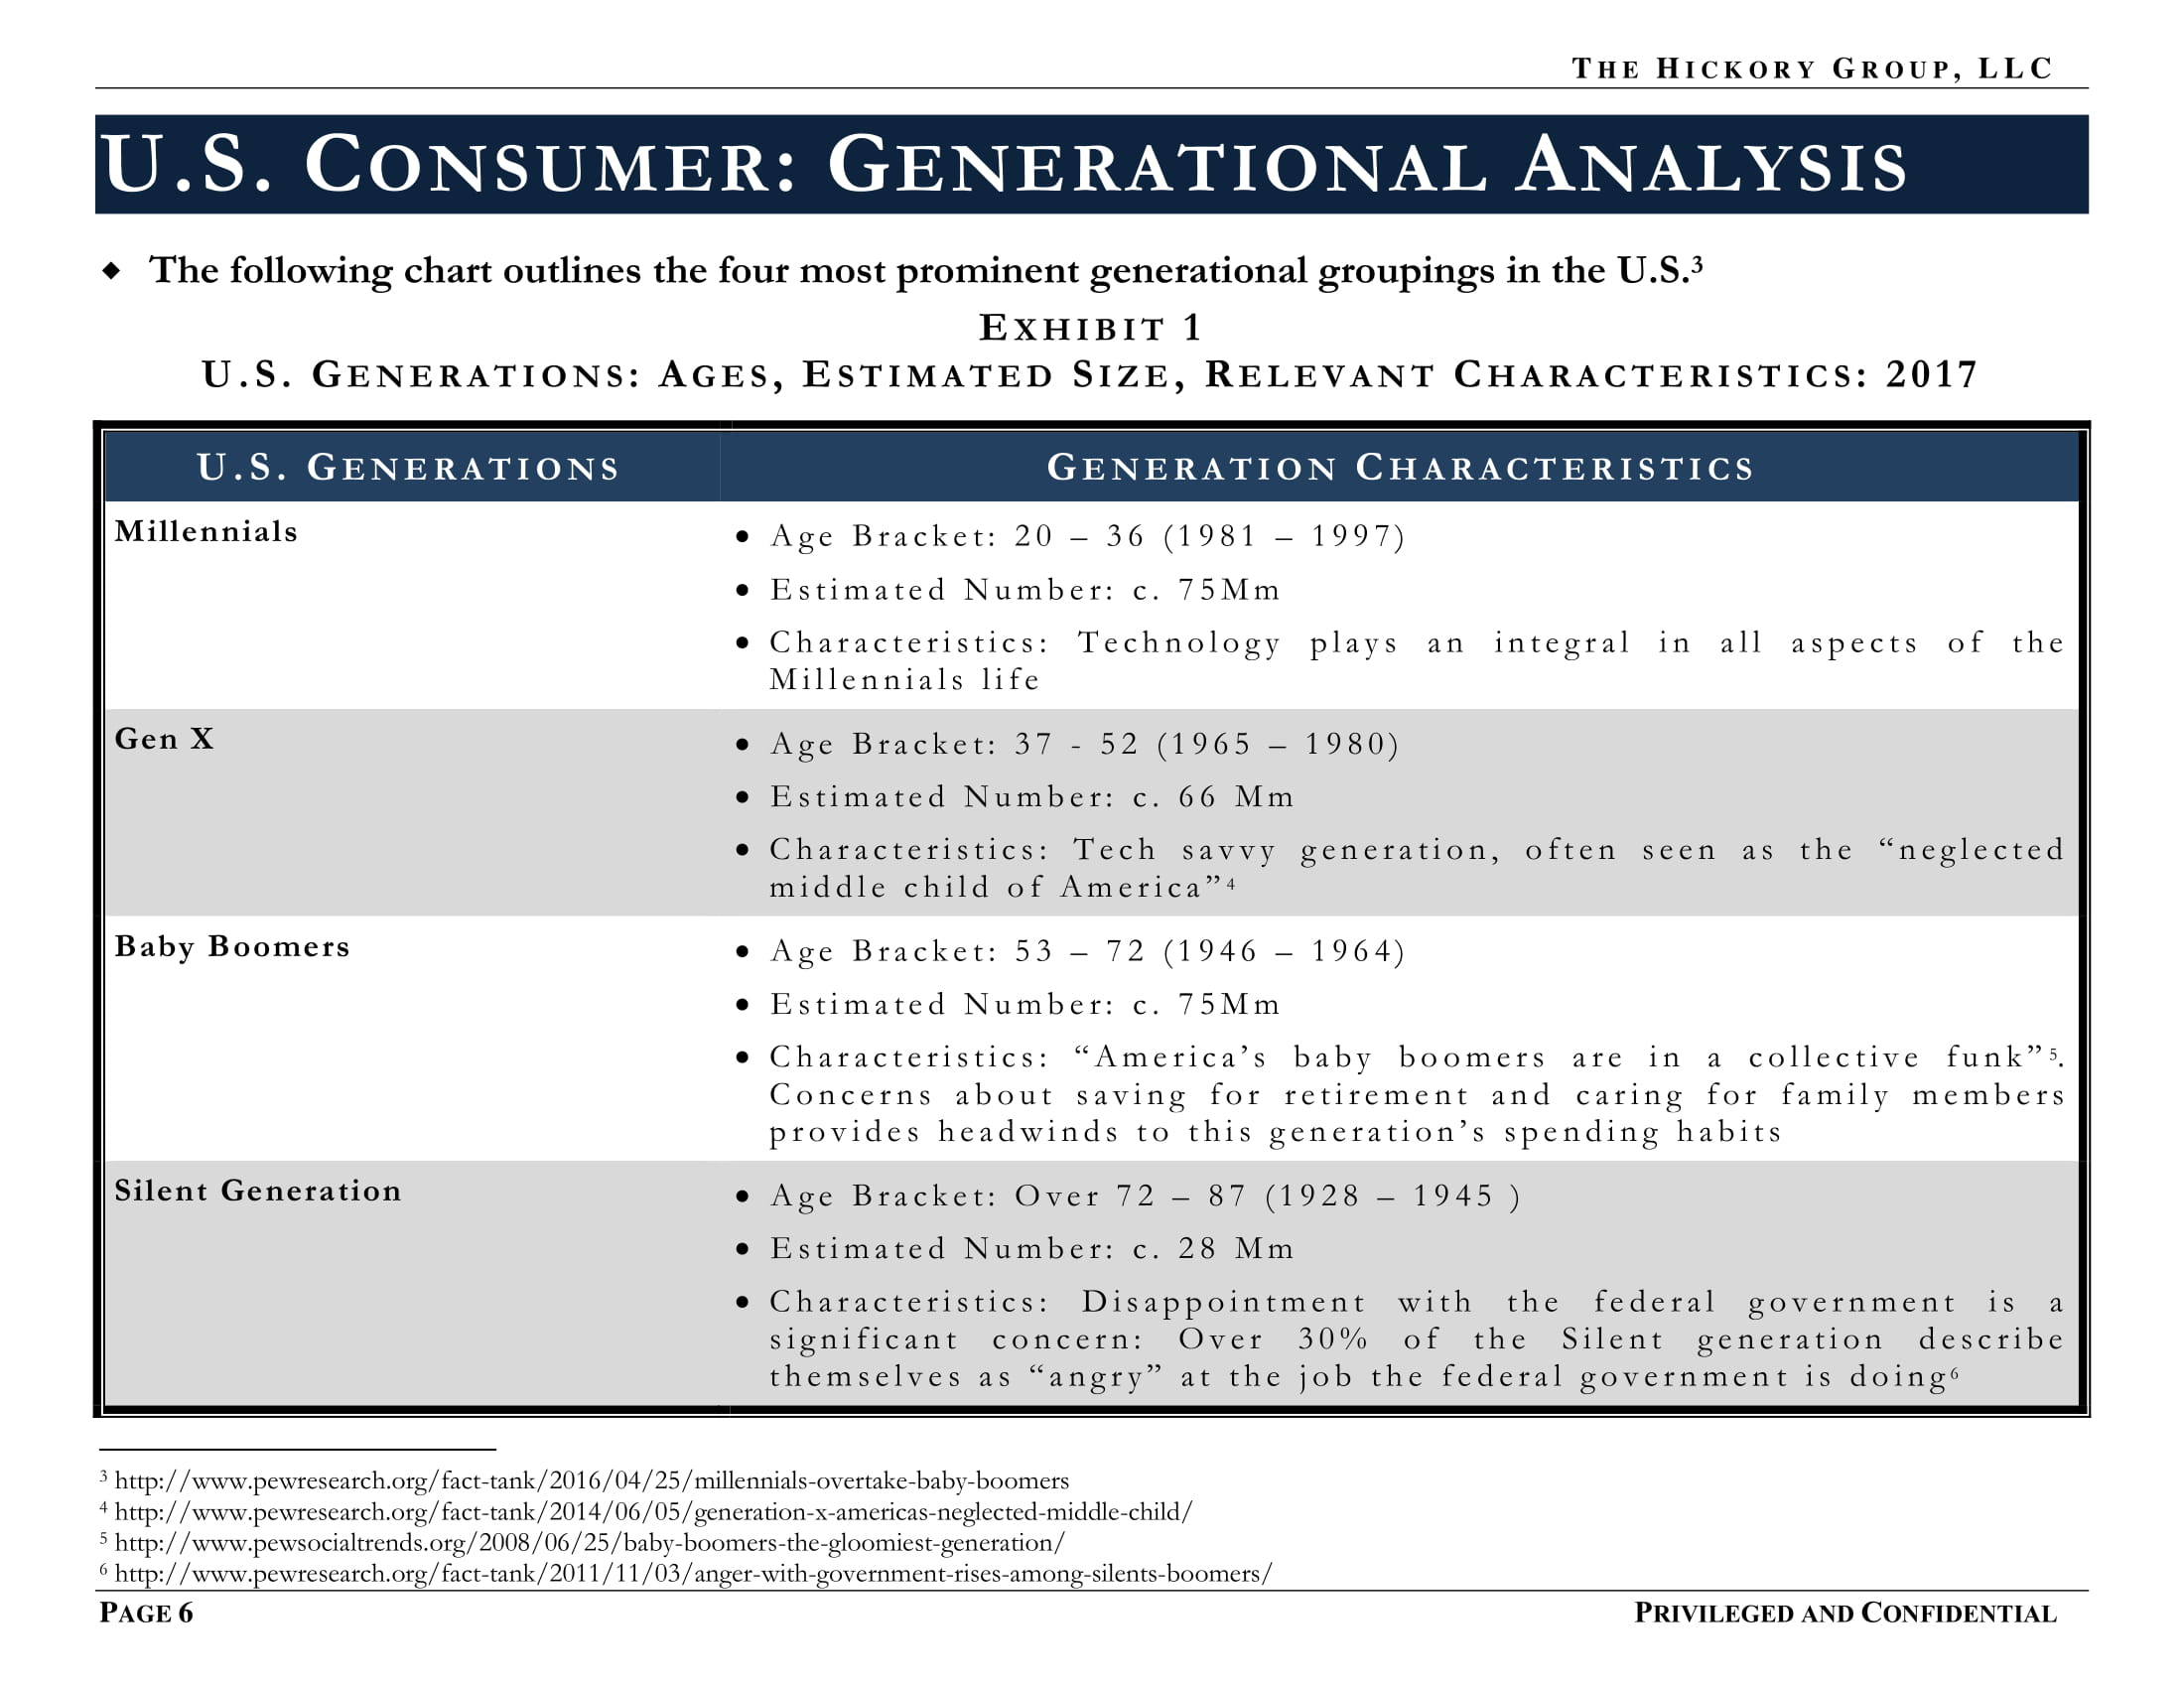 PUBLIC FINAL _Millennials and Equine Market Summary (15 November 2017) Privileged and Confidential-06.jpg